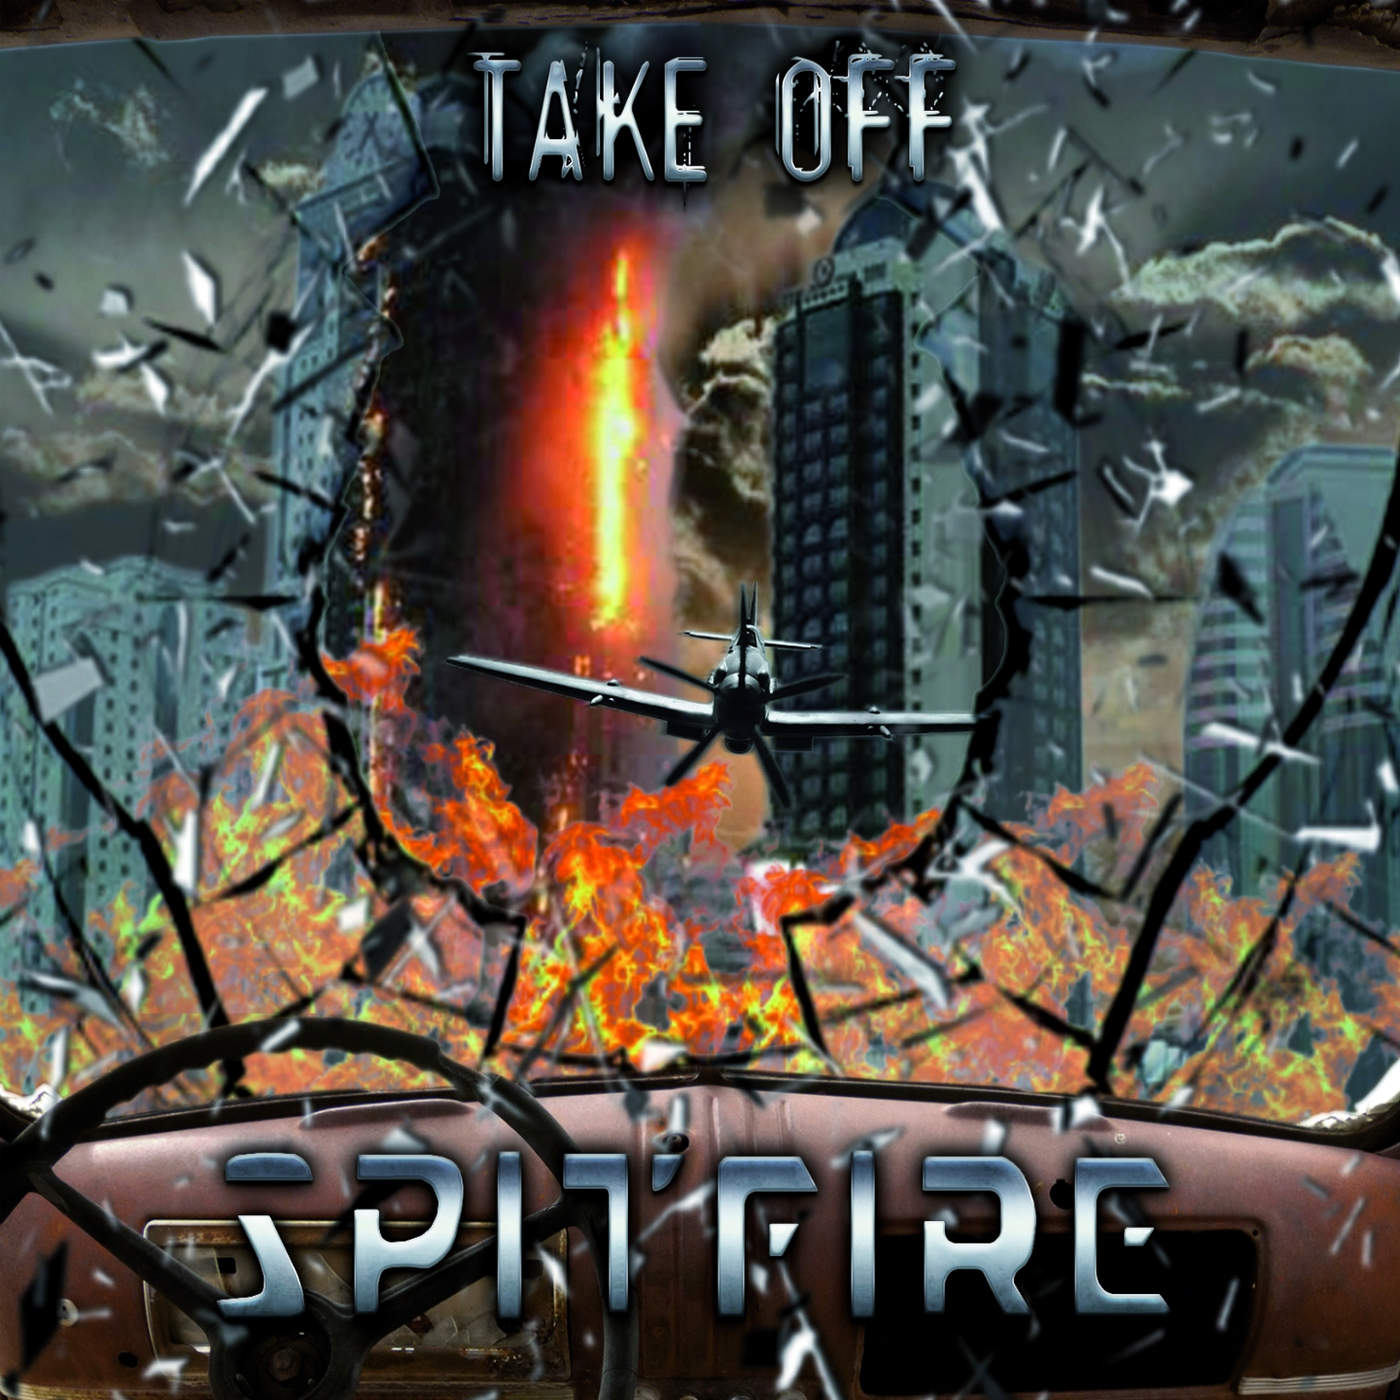 spitfire take off EP